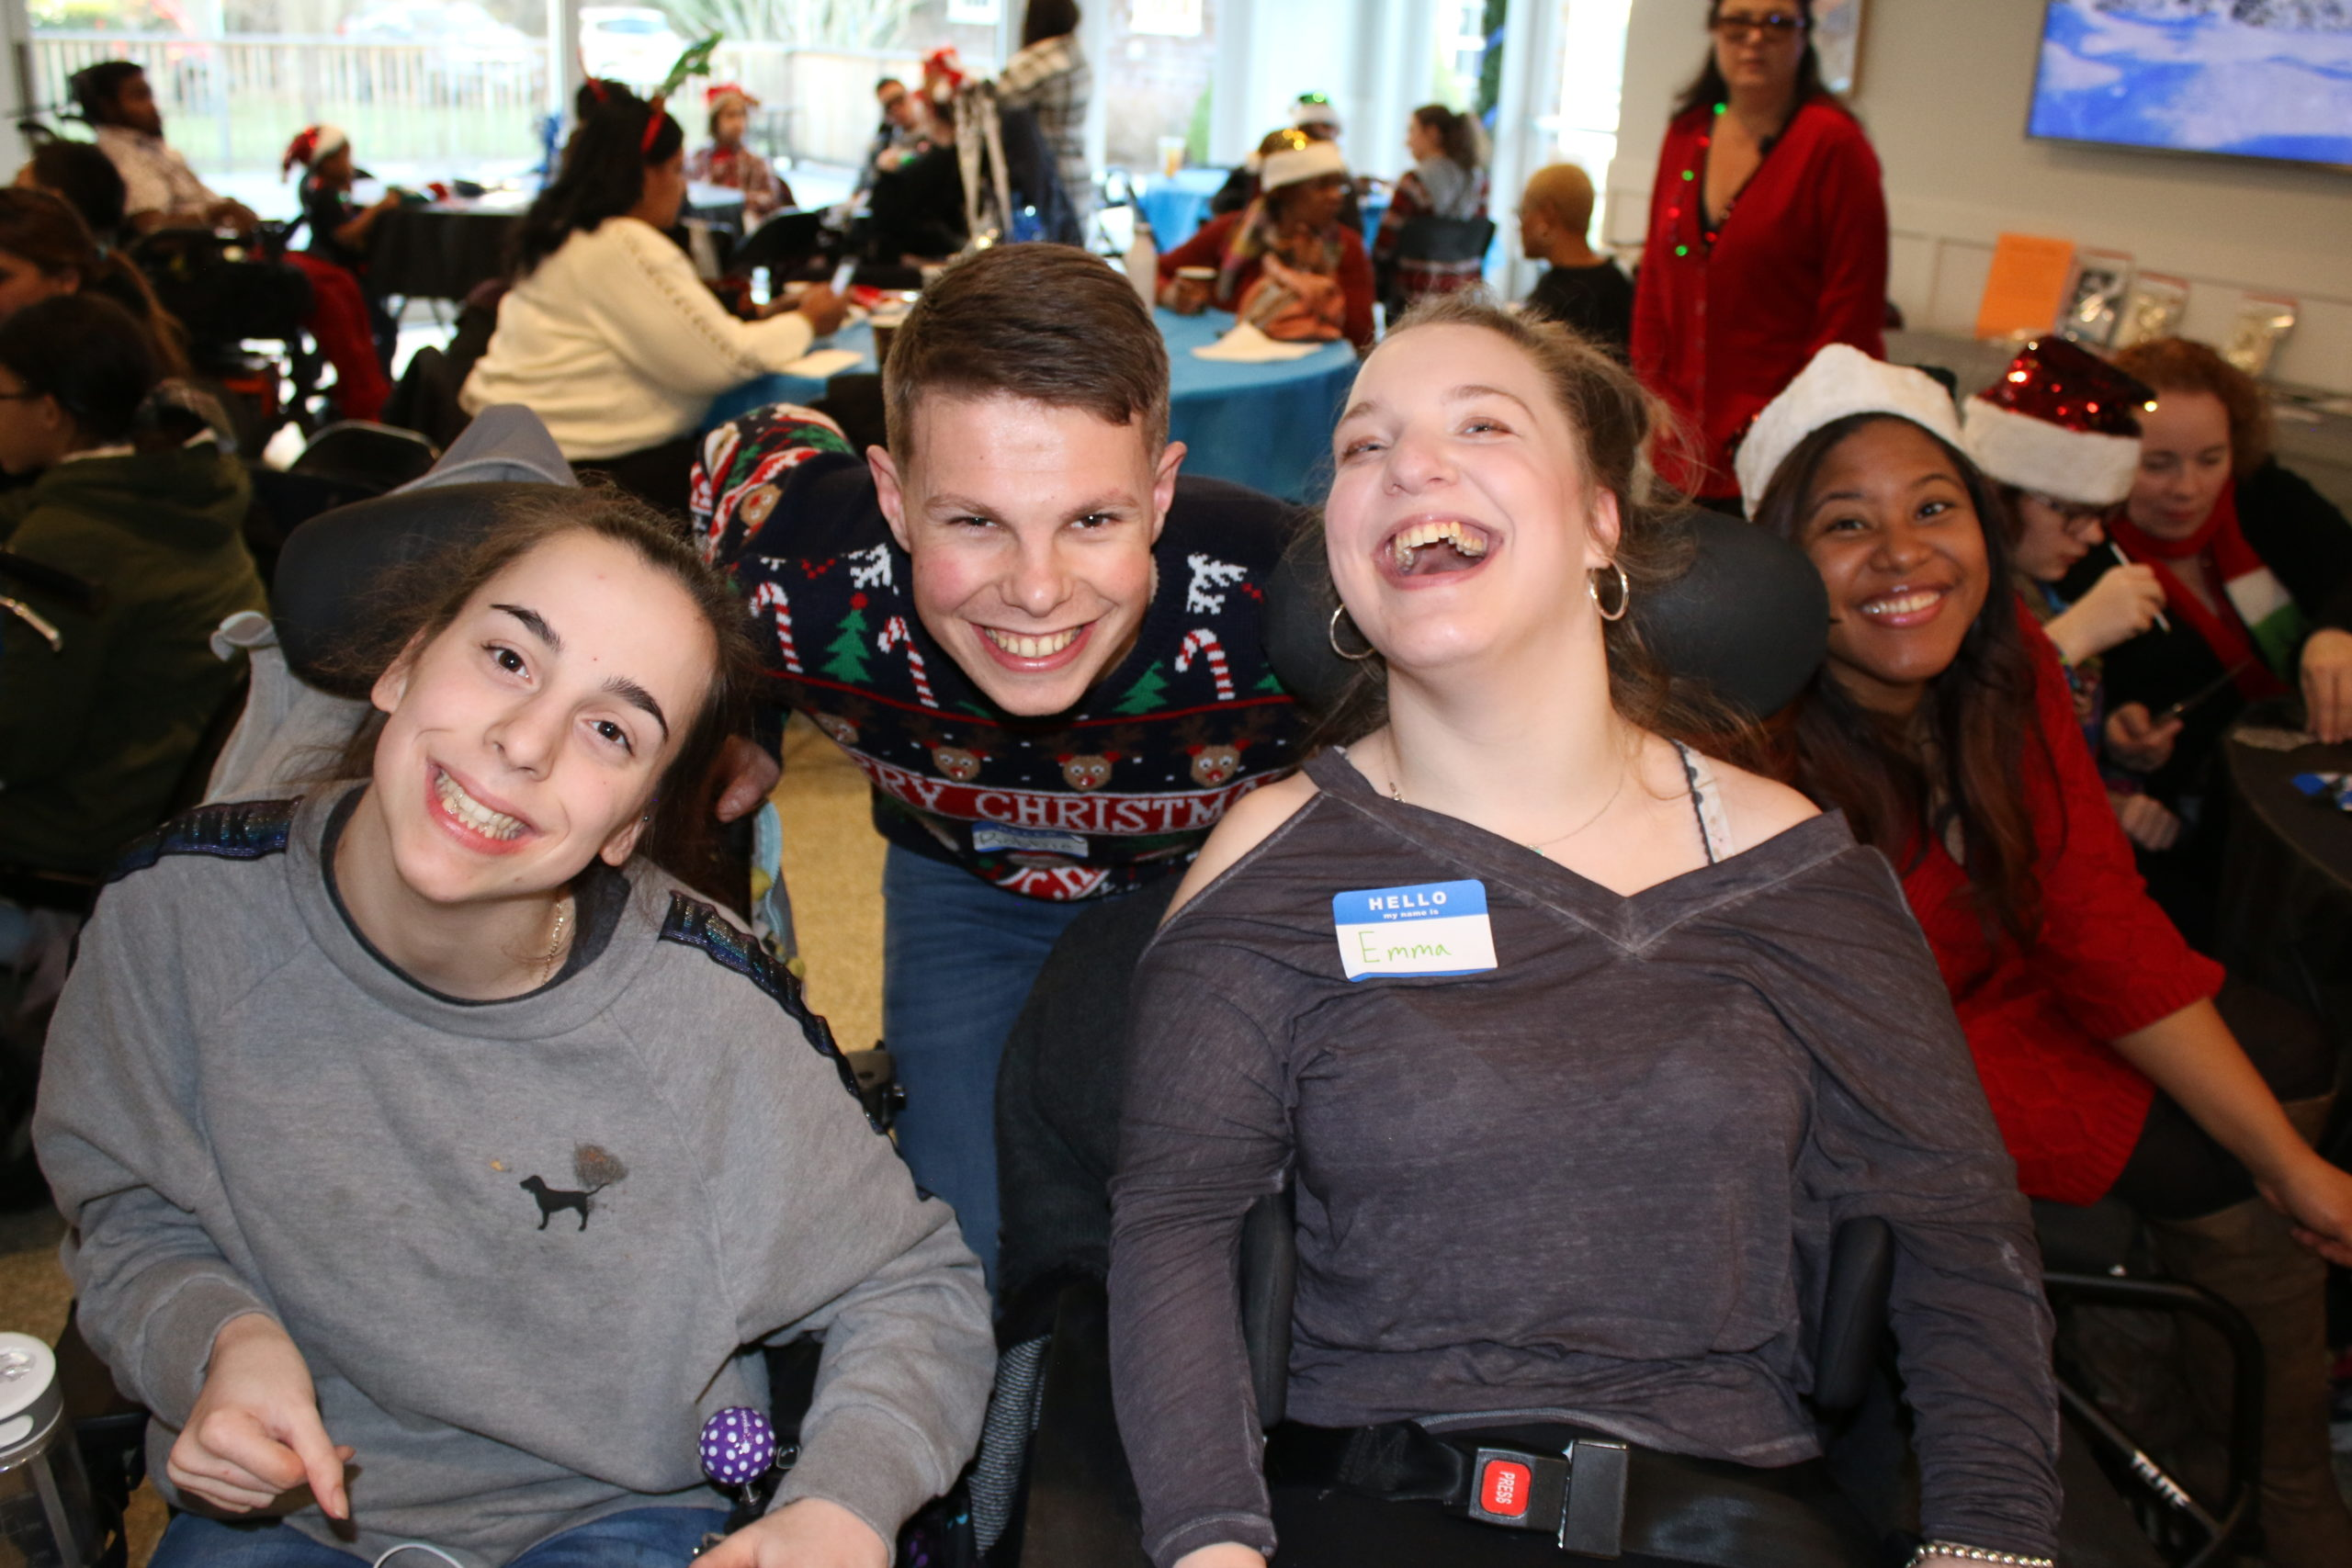 Southampton Fresh Air Home for physically challenged youth hosted its annual holiday party on Saturday, December 7, welcoming more than 125 former and current campers, along with friends and family. The home's volunteers and counselors served lunch and distributed gifts purchased with donations received on #GivingTuesday. There was even a visit from Santa. Southampton Fresh Air Home offers both summer camp programs and year-round programs providing recreational and educational activities. NIELS SCHRODER